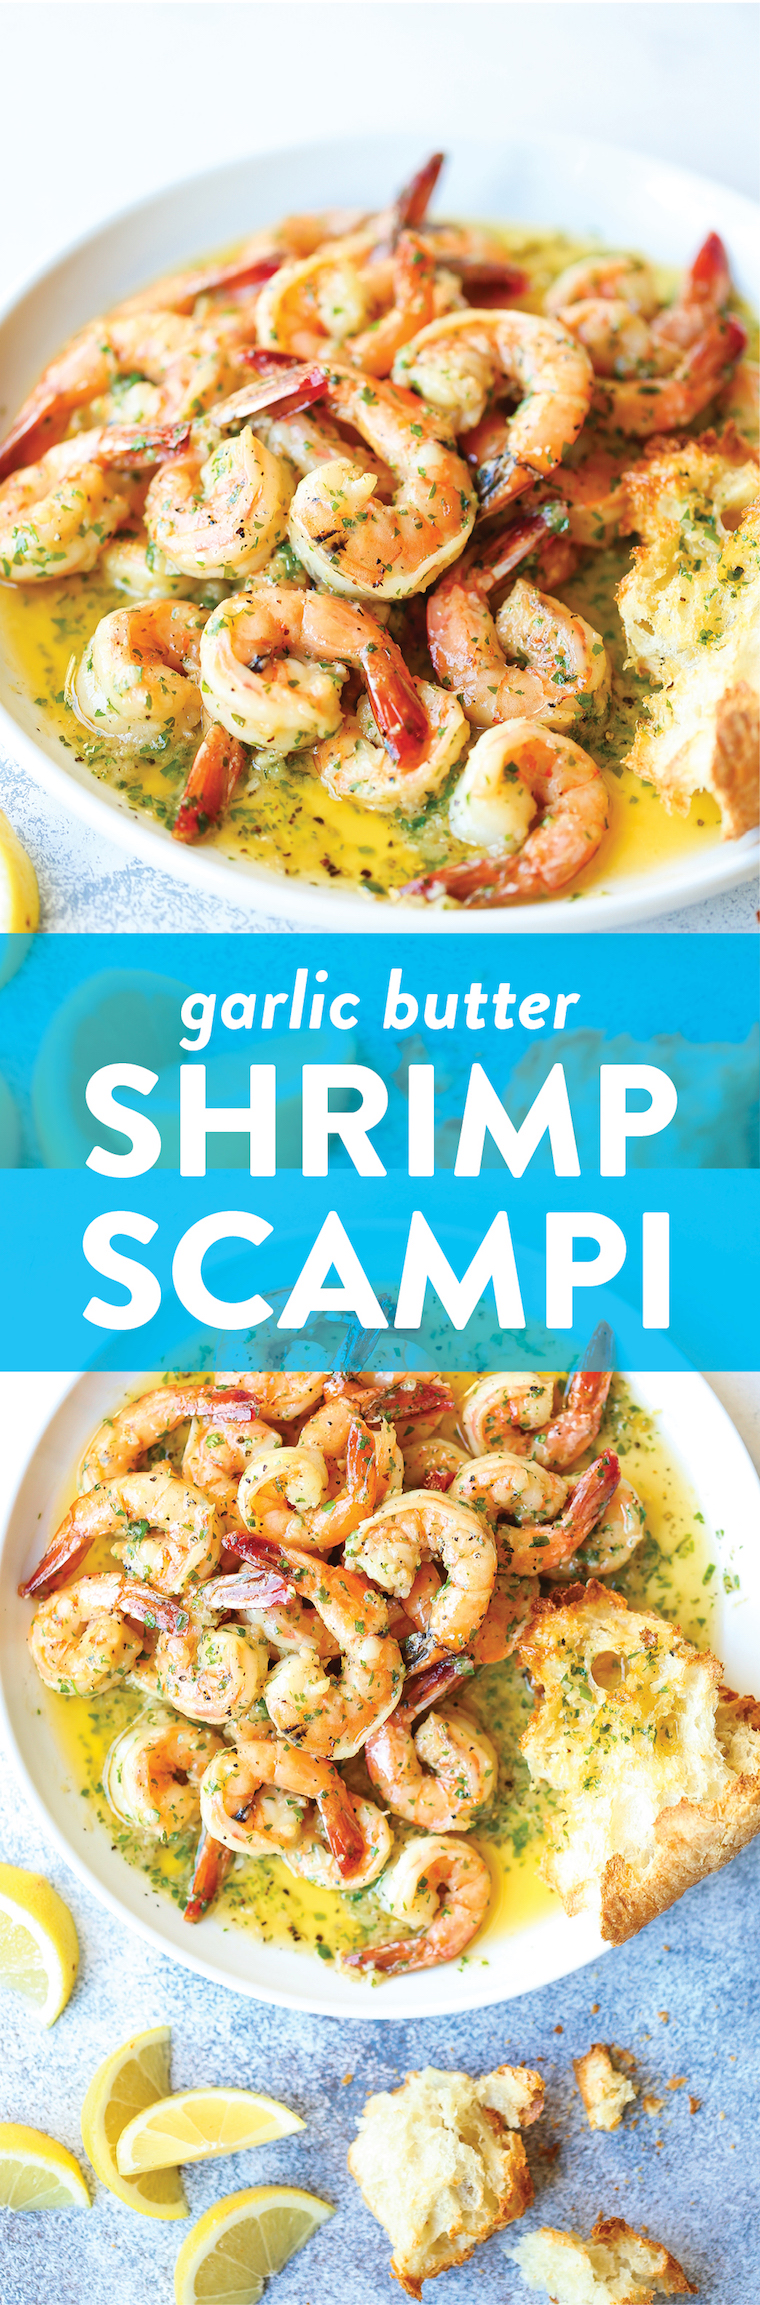 Garlic Butter Shrimp Scampi - Made in just 20 min from start to finish! The garlic butter sauce is TO DIE FOR - so buttery, so garlicky/lemony + so perfect!